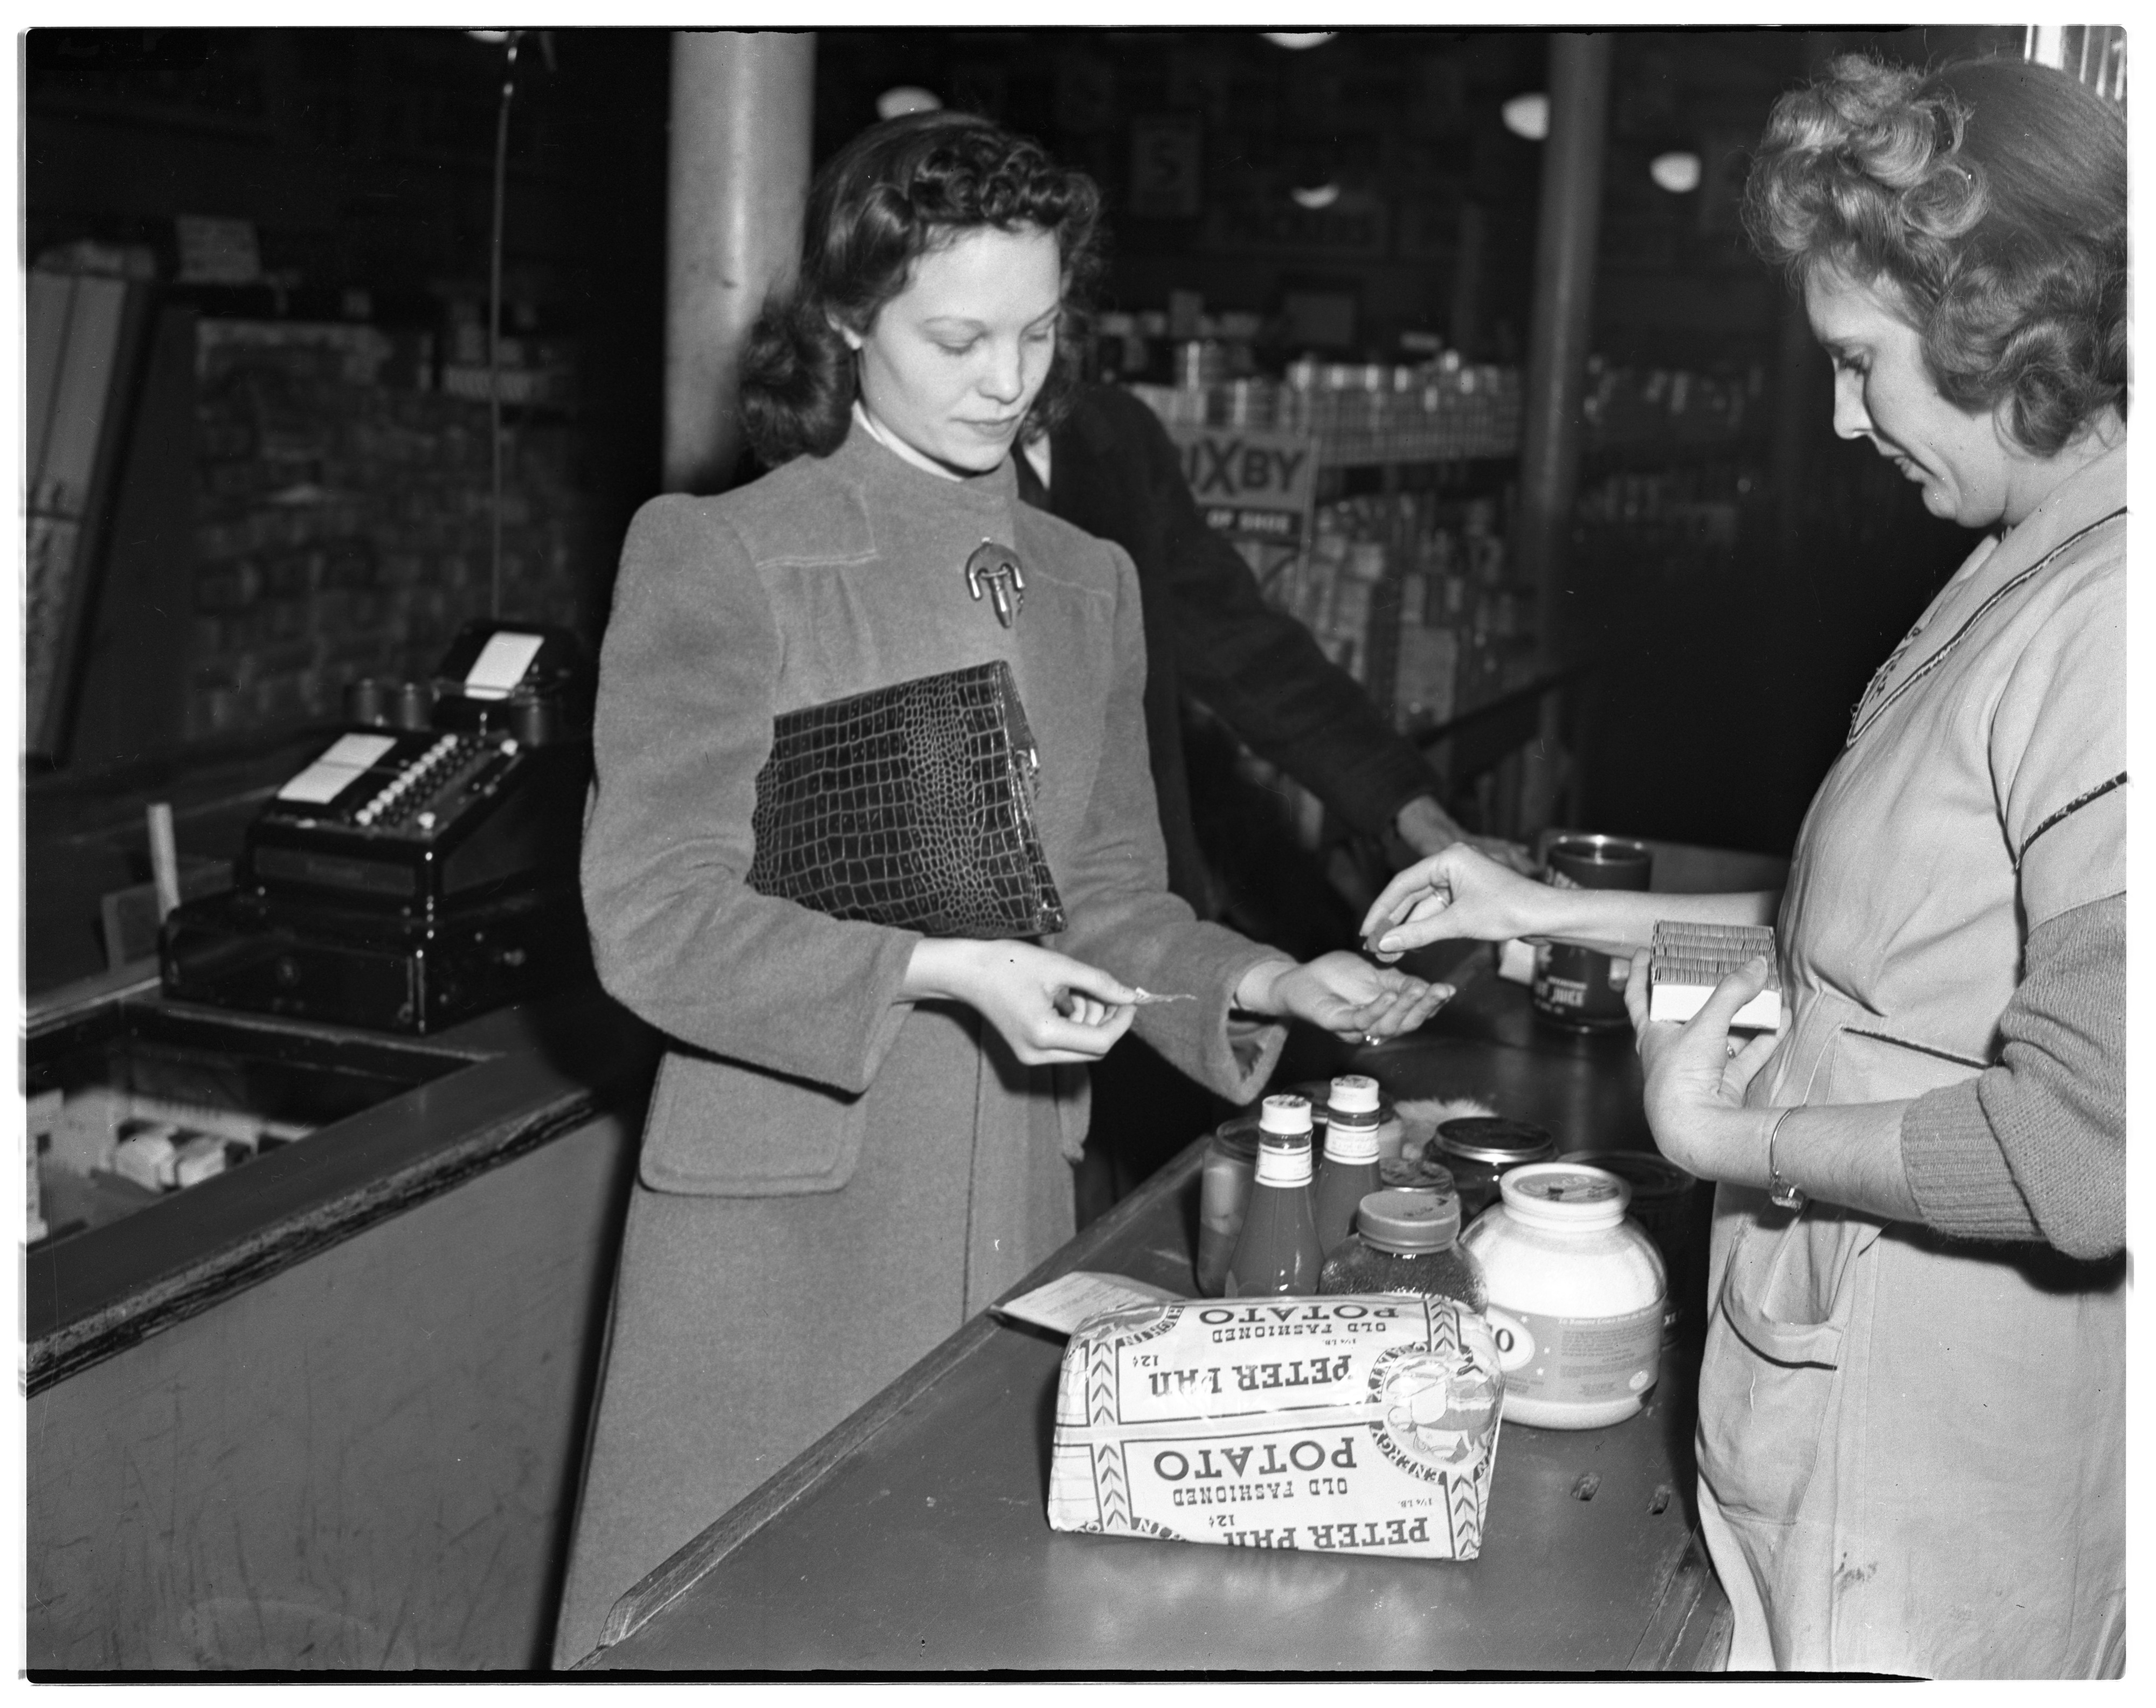 First Ration Tokens, Packers Outlet, Ann Arbor, March 1944 image